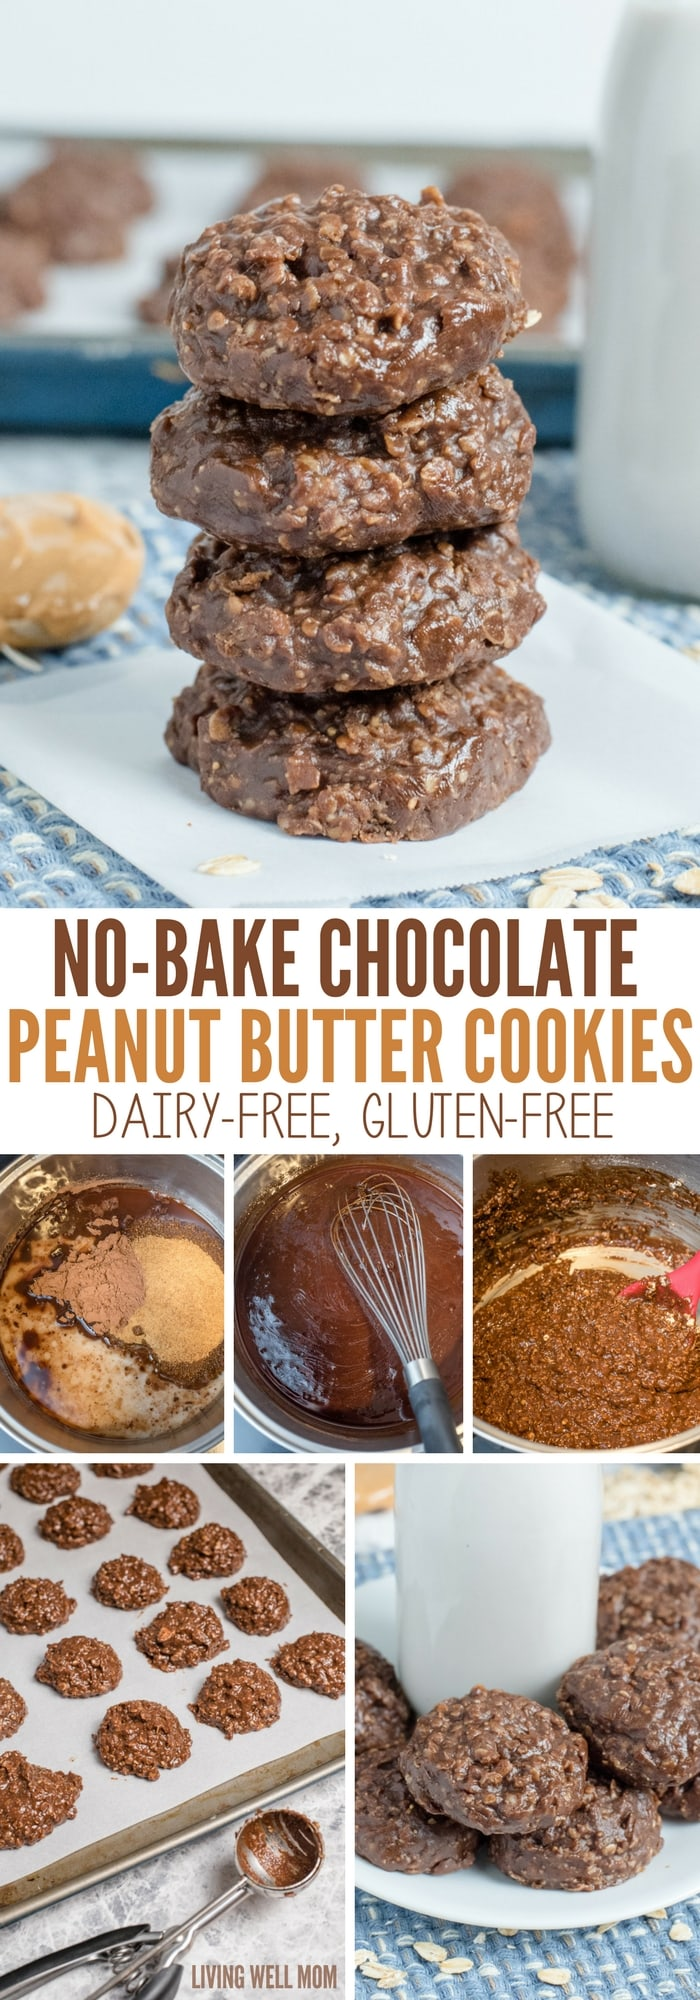 No-Bake Chocolate Peanut Butter Cookies require just 5 minutes of prep time. This easy dairy-free, gluten-free recipe is so delicious, kids and adults alike will gobble up these cookies!